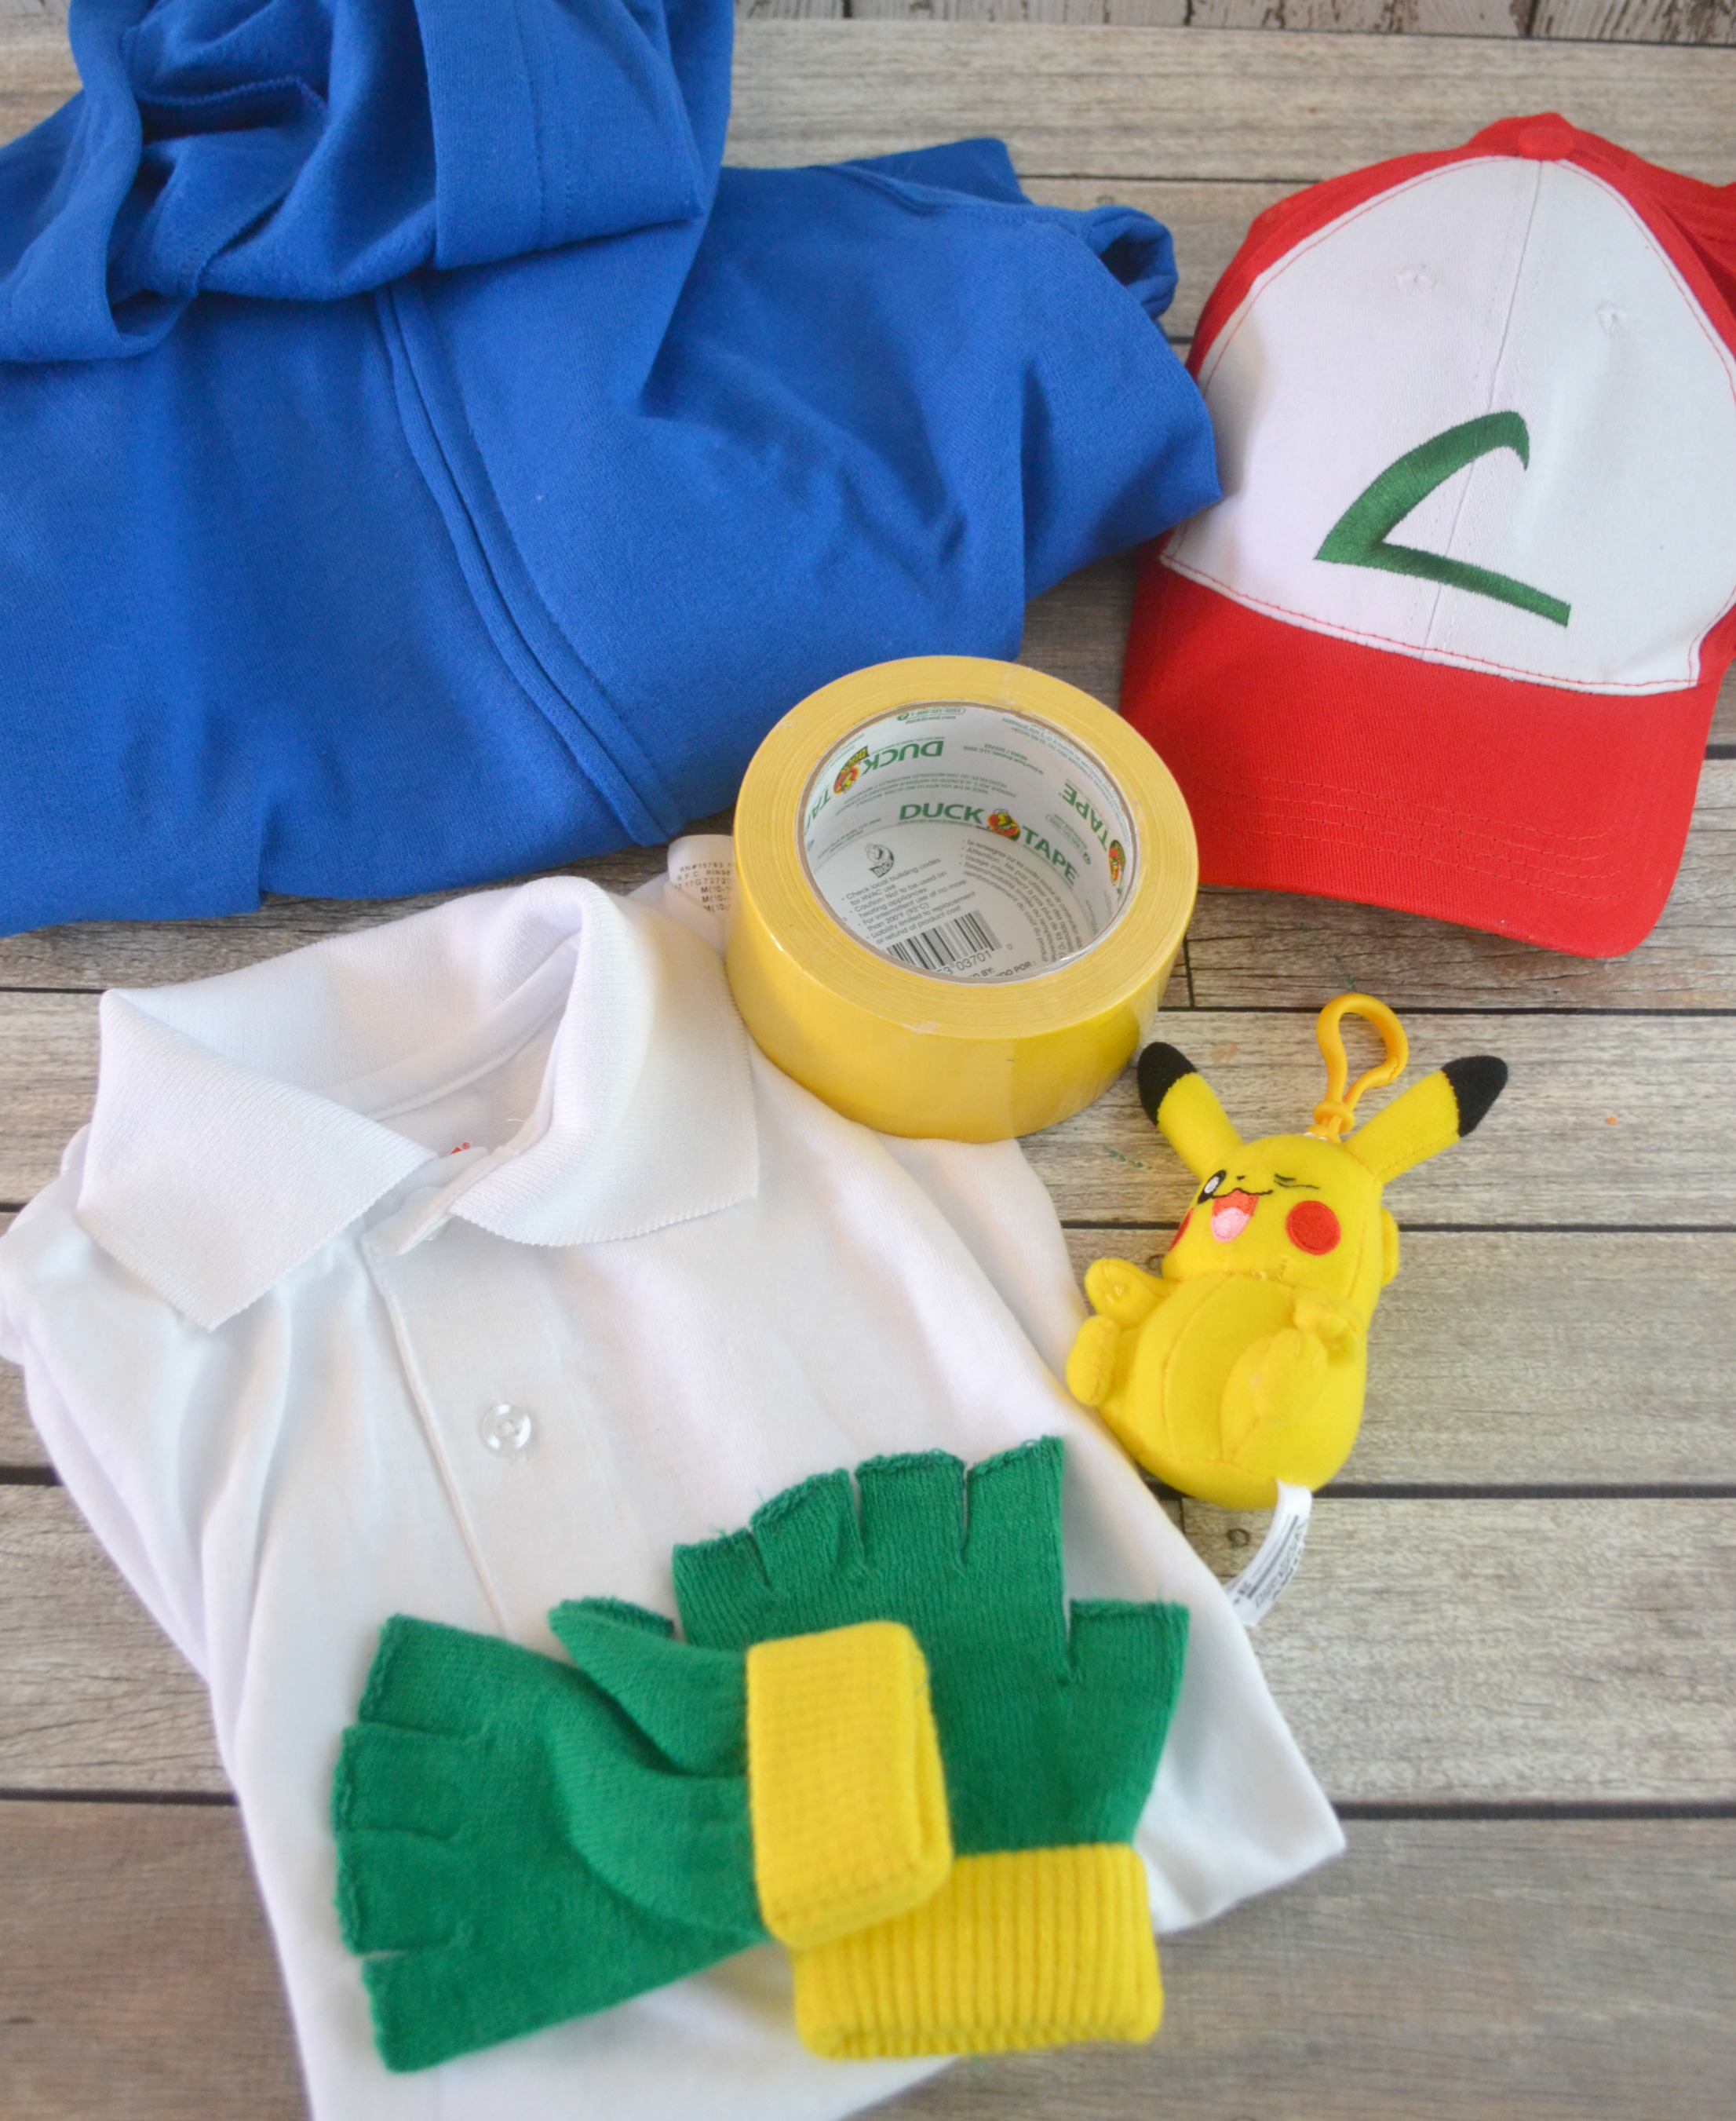 Ash Ketchum - Pokemon DIY Halloween Costume, Pokemon halloween costume, Ash Ketchum halloween costume, DIY Ash Ketchum costume, Pokemon costumes, DIY pokemon costume, Pokemon trainer costume, DIY halloween costumes